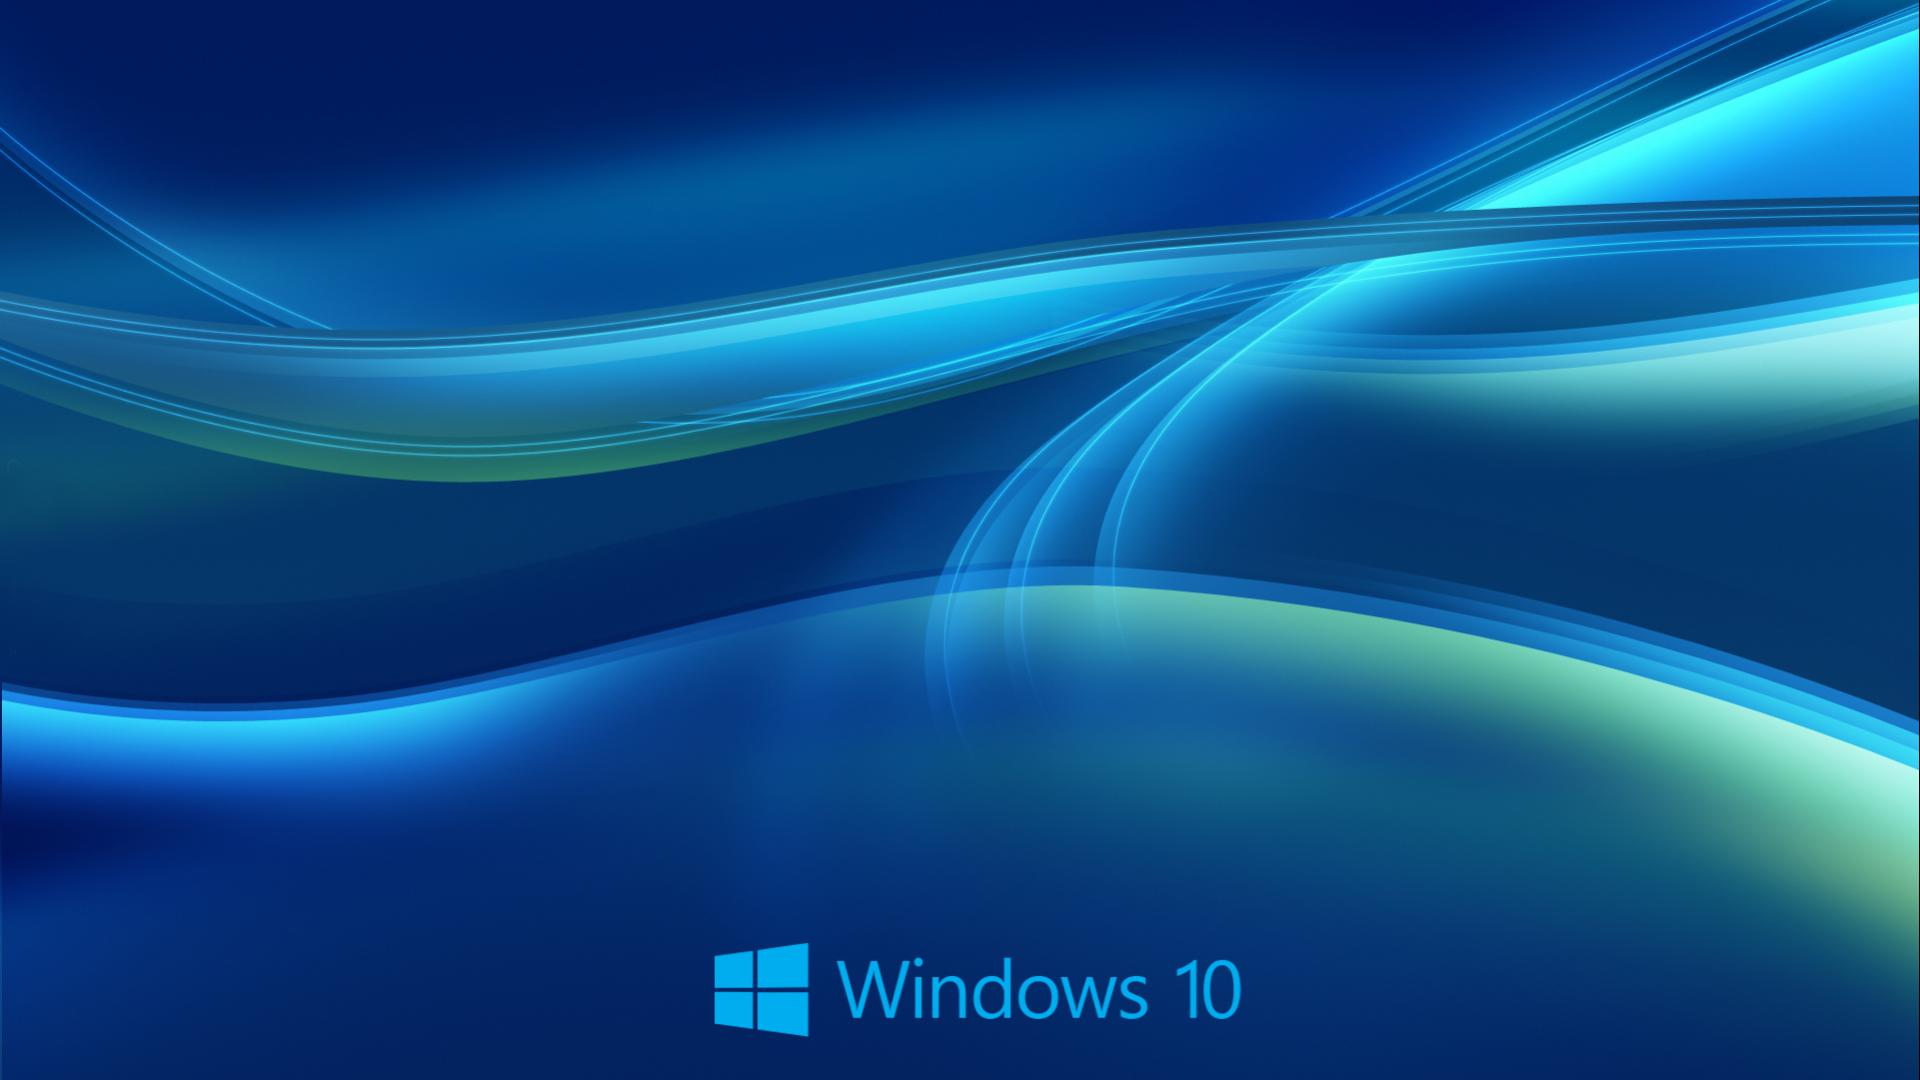 Wallpaper HD in Blue Abstract with New Logo HD Wallpapers for 1920x1080